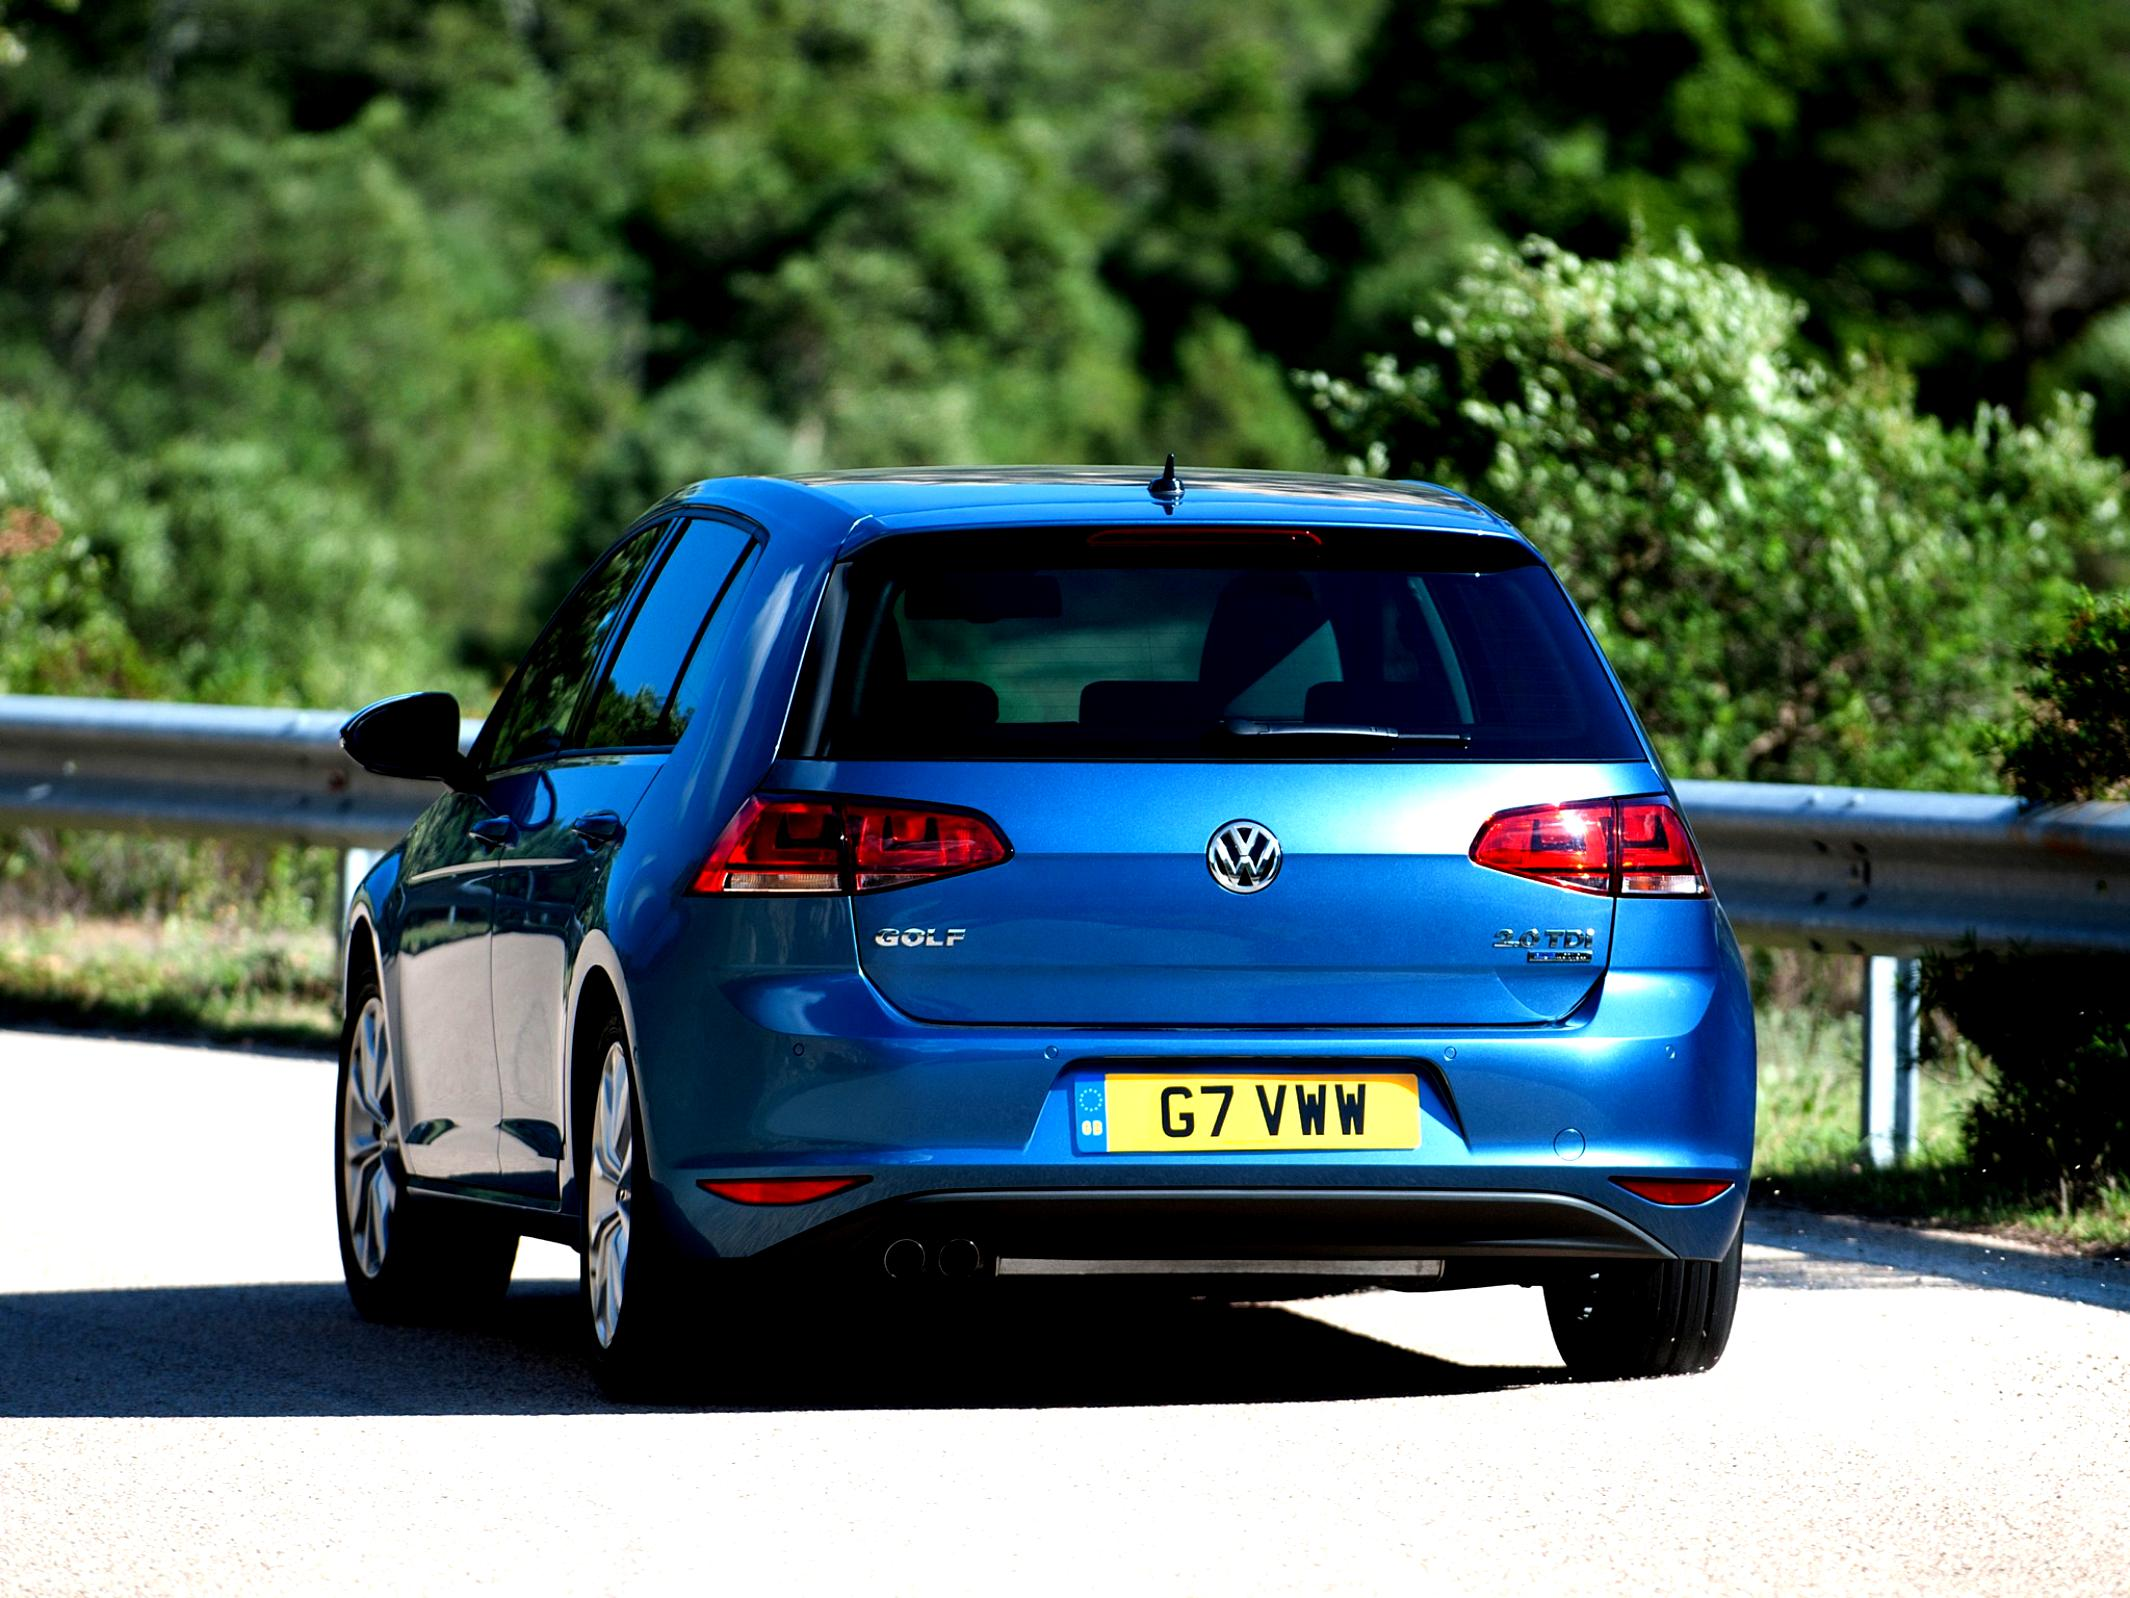 Volkswagen Golf VII 5 Doors 2012 #48